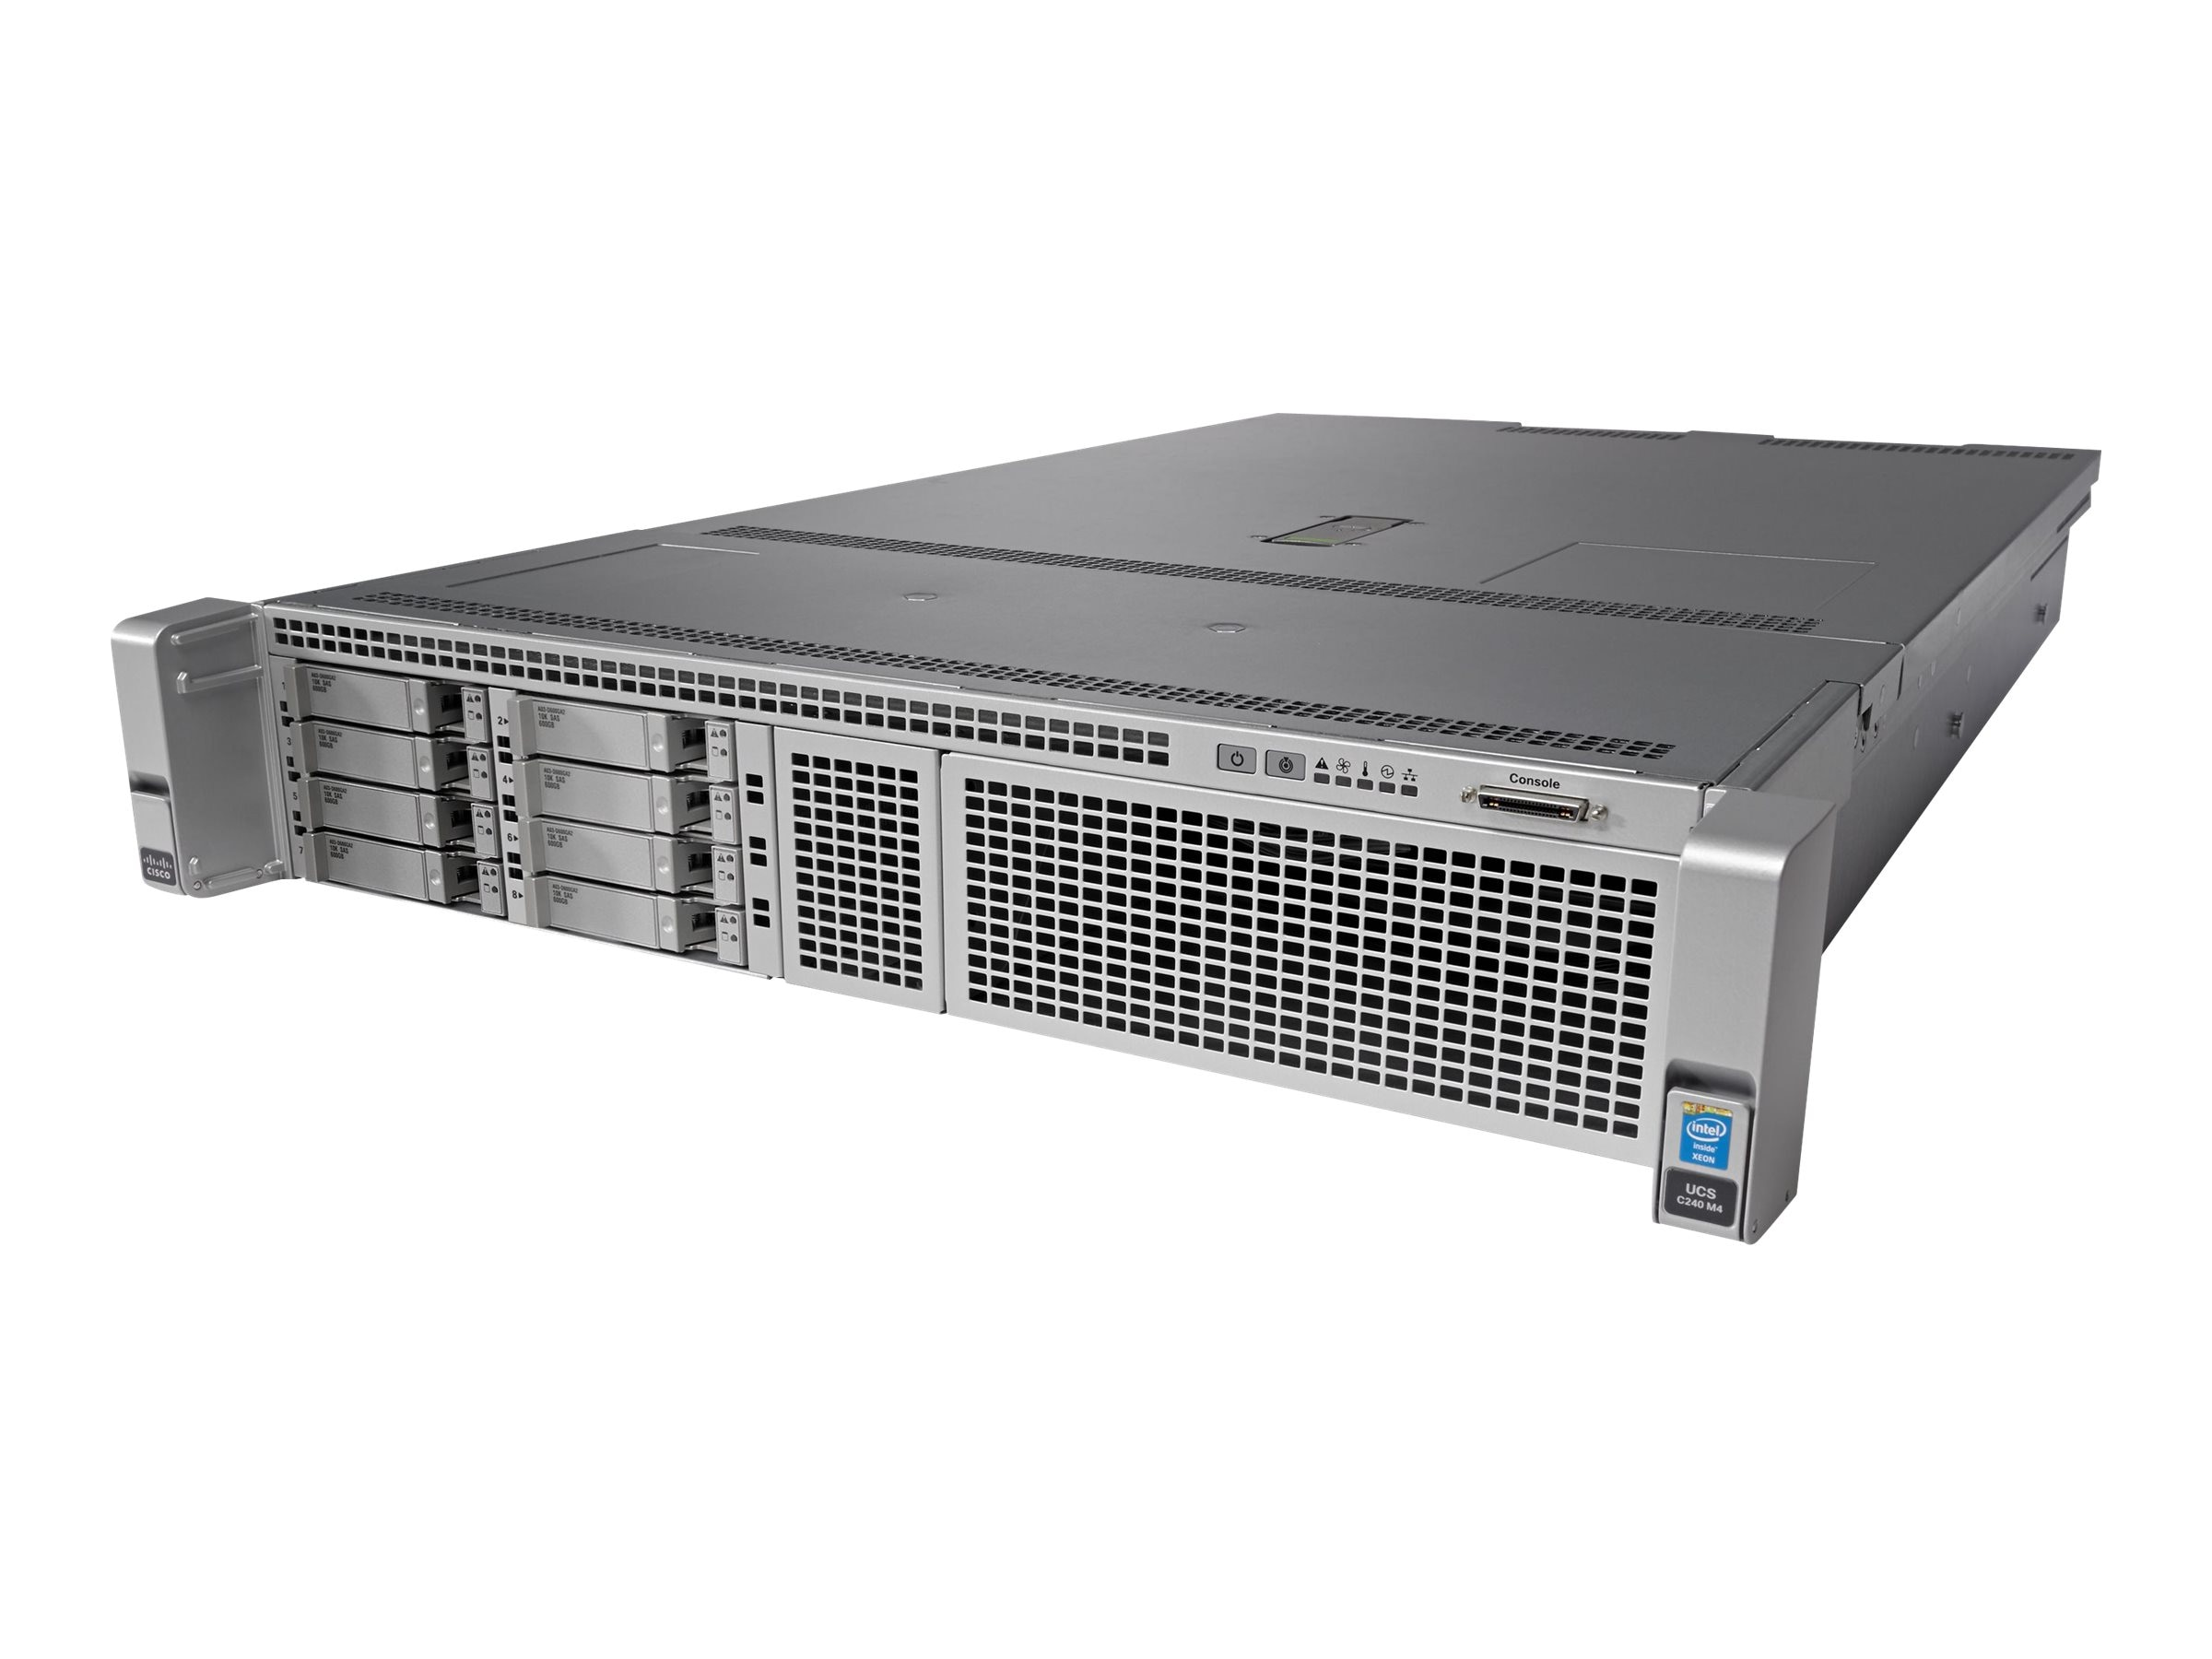 Cisco UCS C240 M4SX (2x)Xeon E5-2680 v3 32GB MRAID, UCS-SPR-C240M4-P2, 17922335, Servers